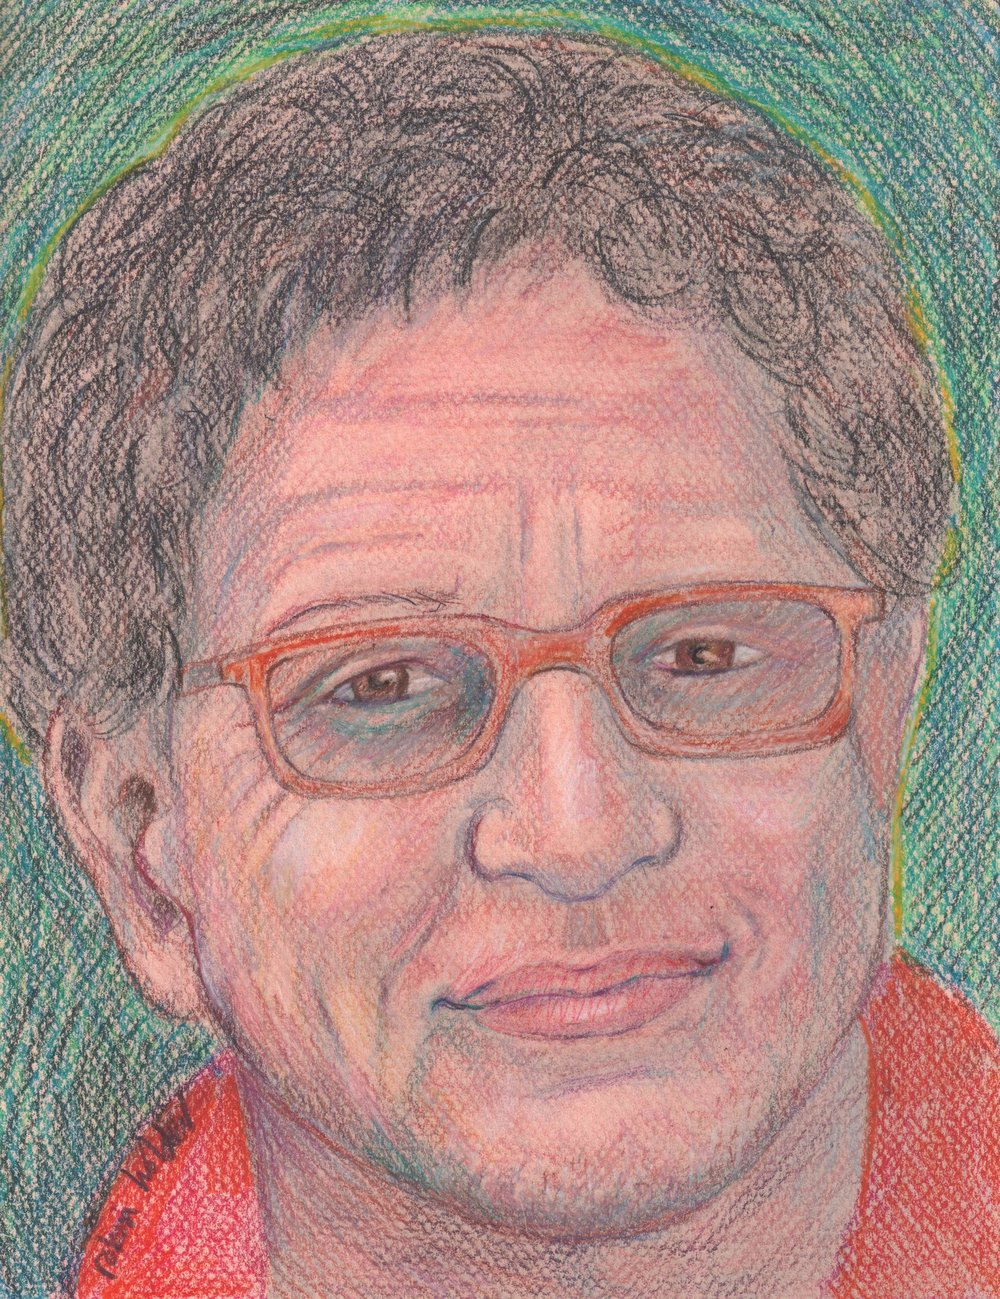 jonathan raskin by robin holder.jpeg